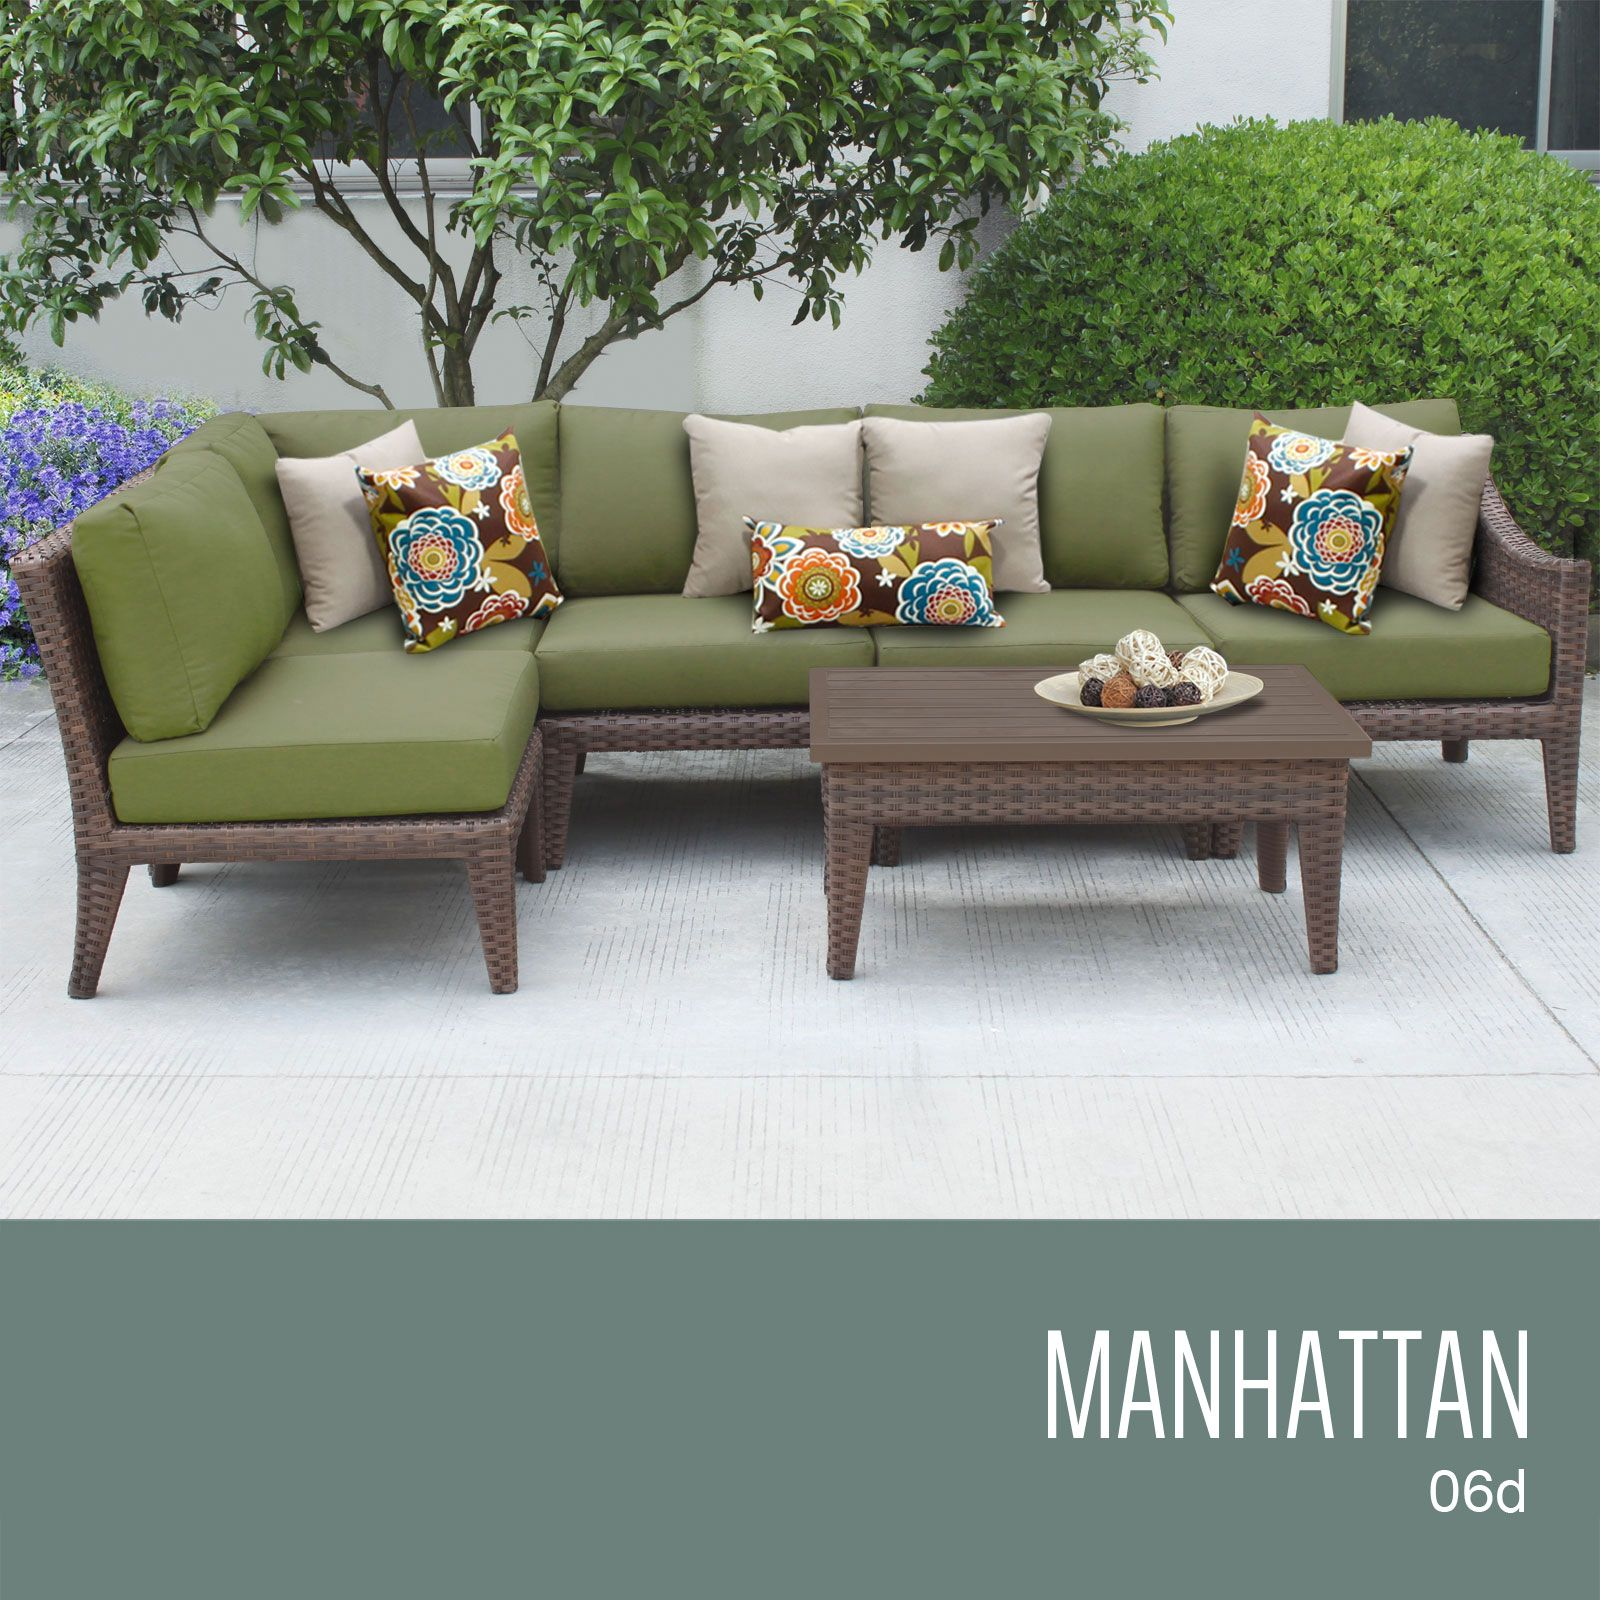 Manhattan Collection   Outdoor Wicker Patio Furniture Set 06d / 6 Piece /  Cilantro